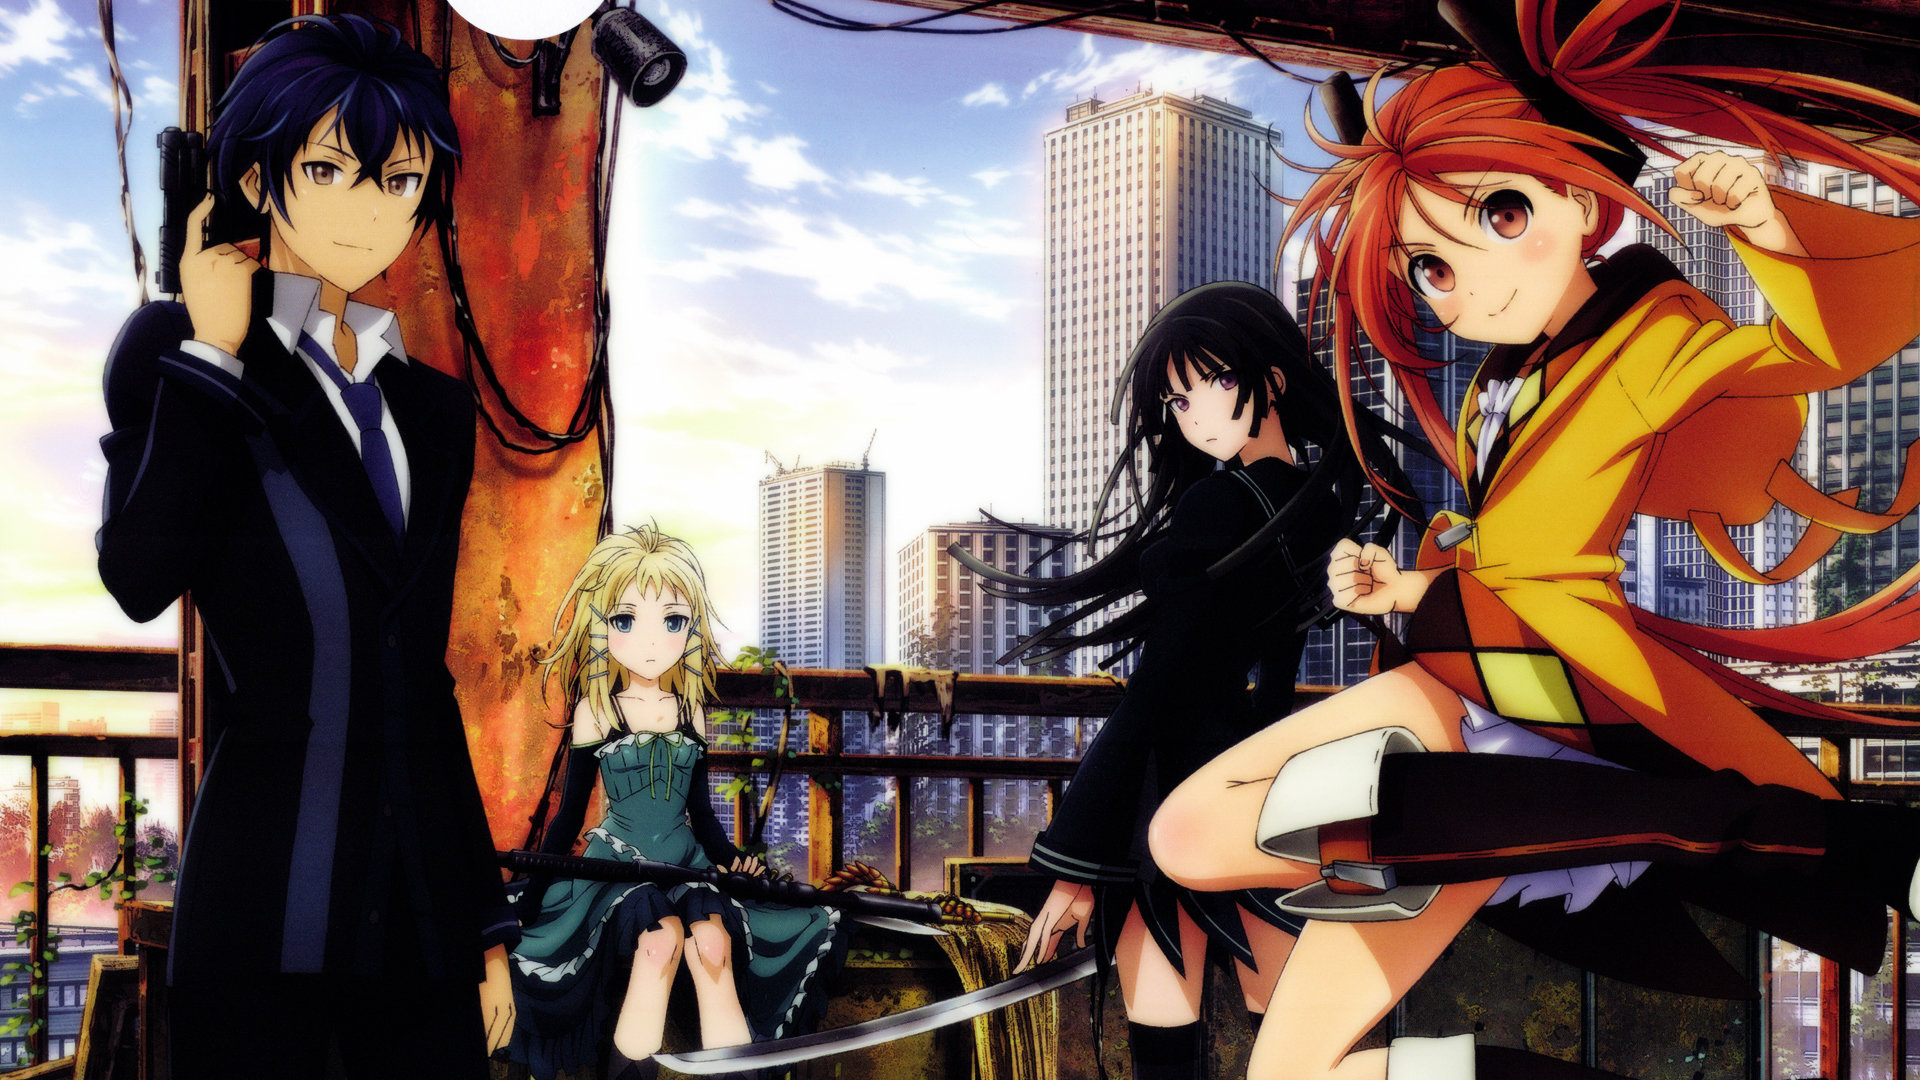 Awesome Black Bullet free wallpaper ID:342391 for hd 1080p computer